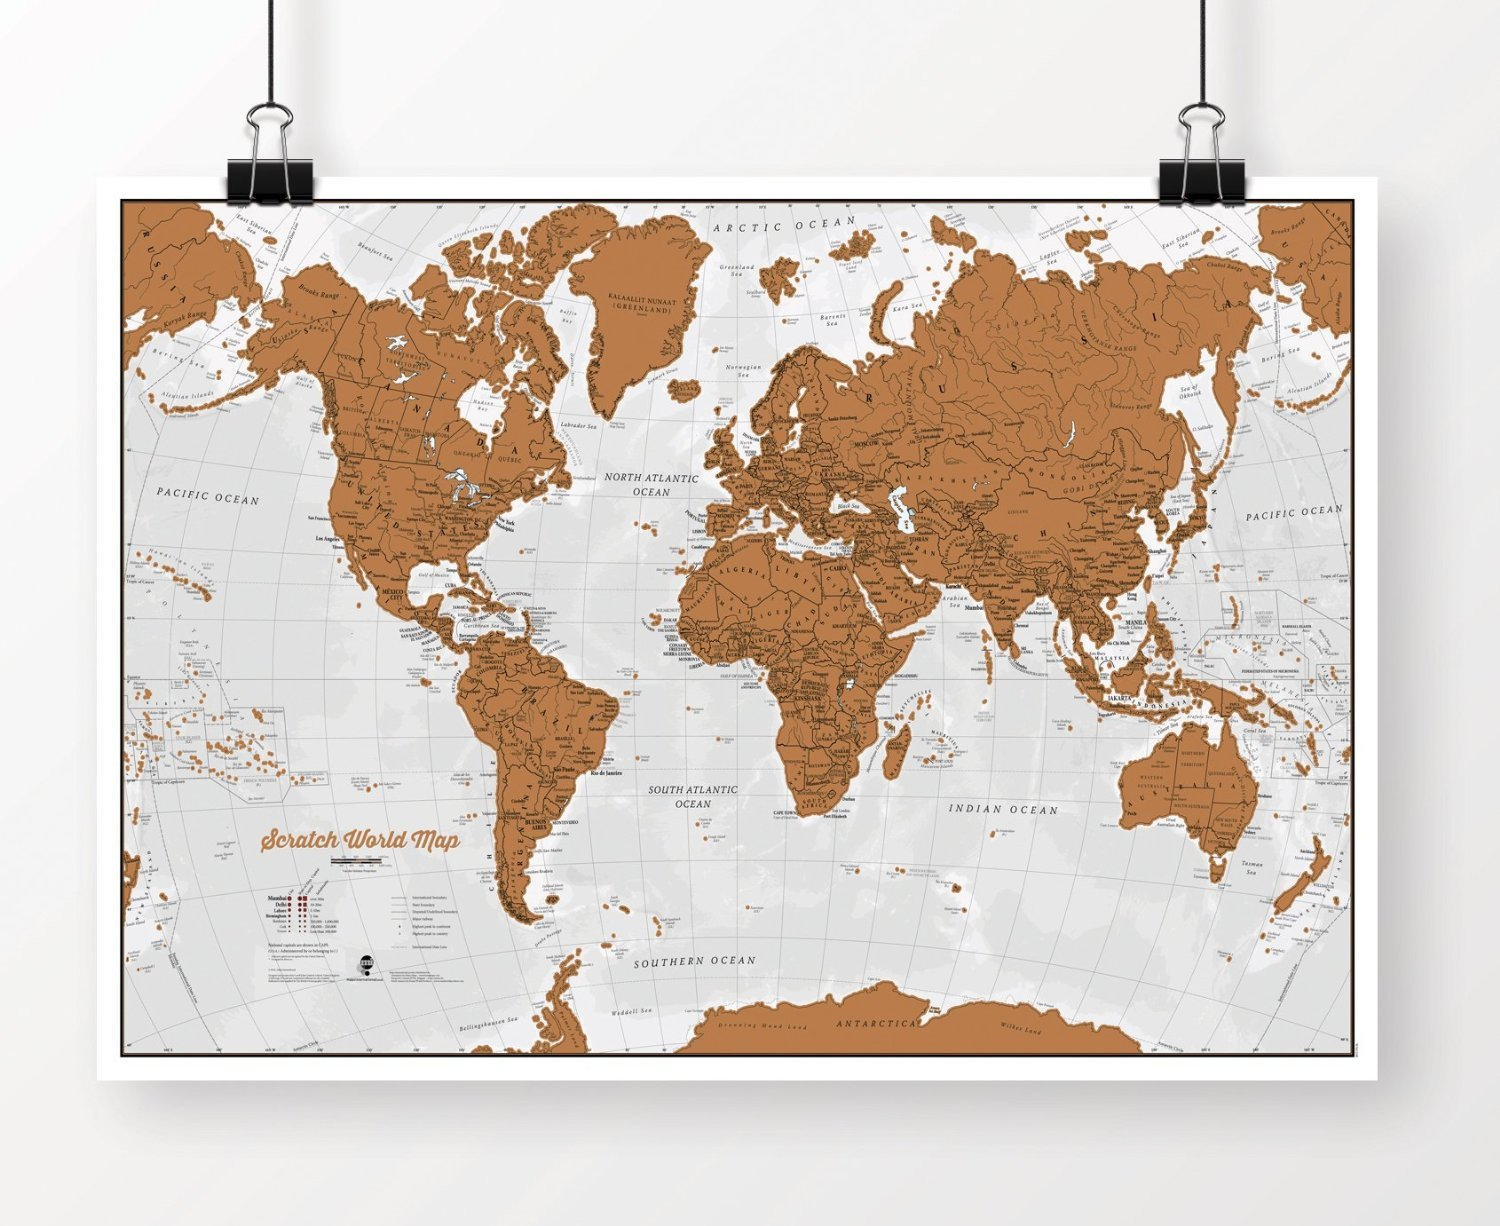 Scratch world map scratch off places you travel scratch world map scratch off places you travel gogetglam gumiabroncs Gallery